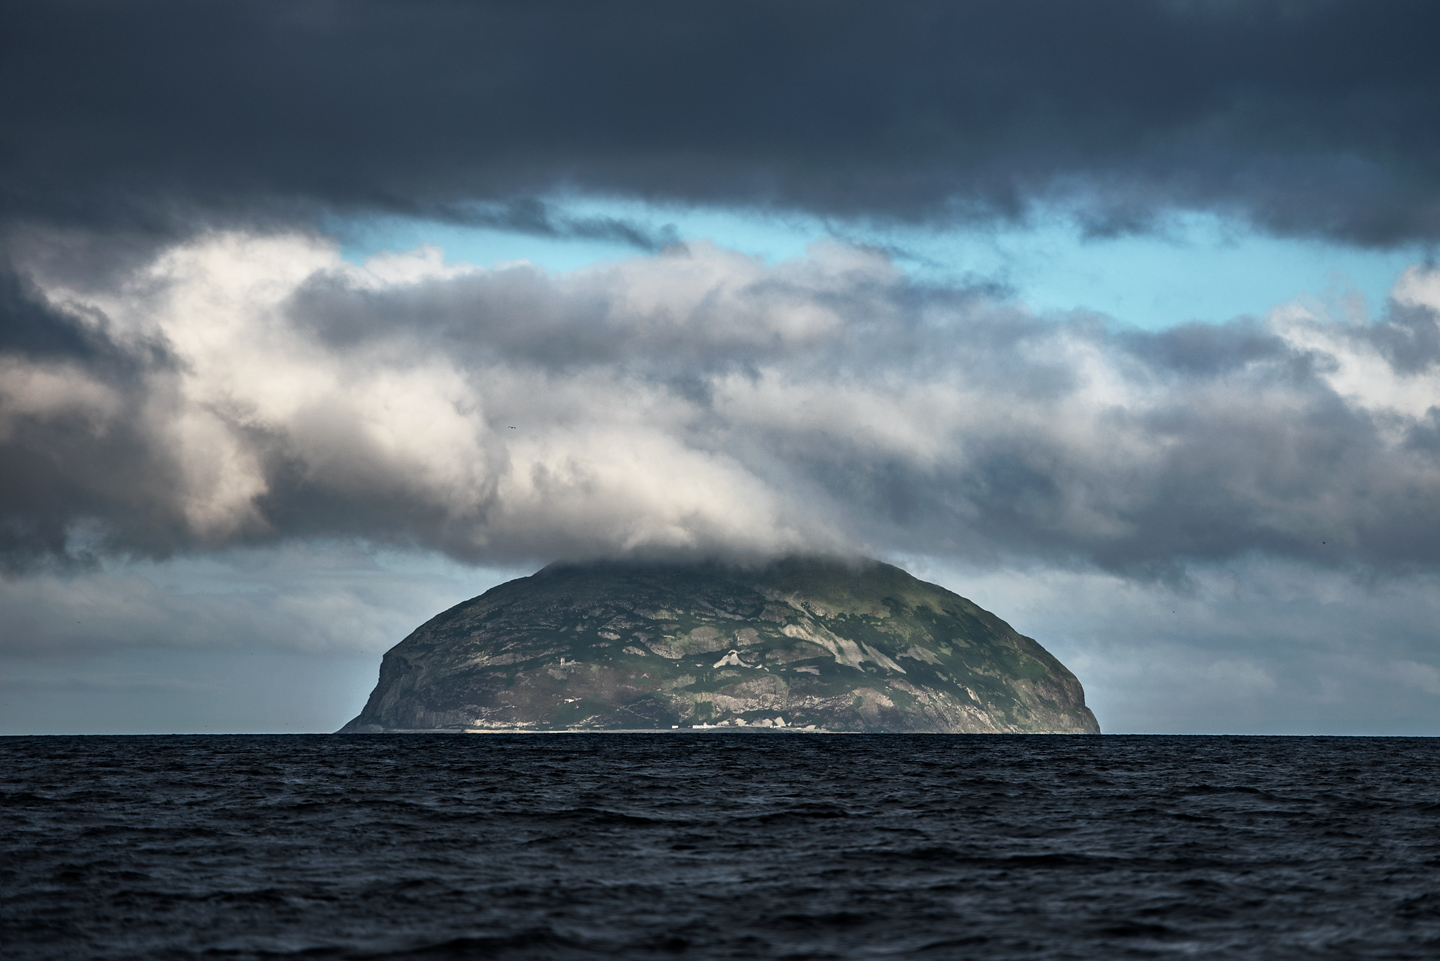 Ailsa Craig in the Firth of Clyde is another study site with 36 000 breeding pairs of gannets. This granite rock is formed from the volcanic plug of an extinct volcano